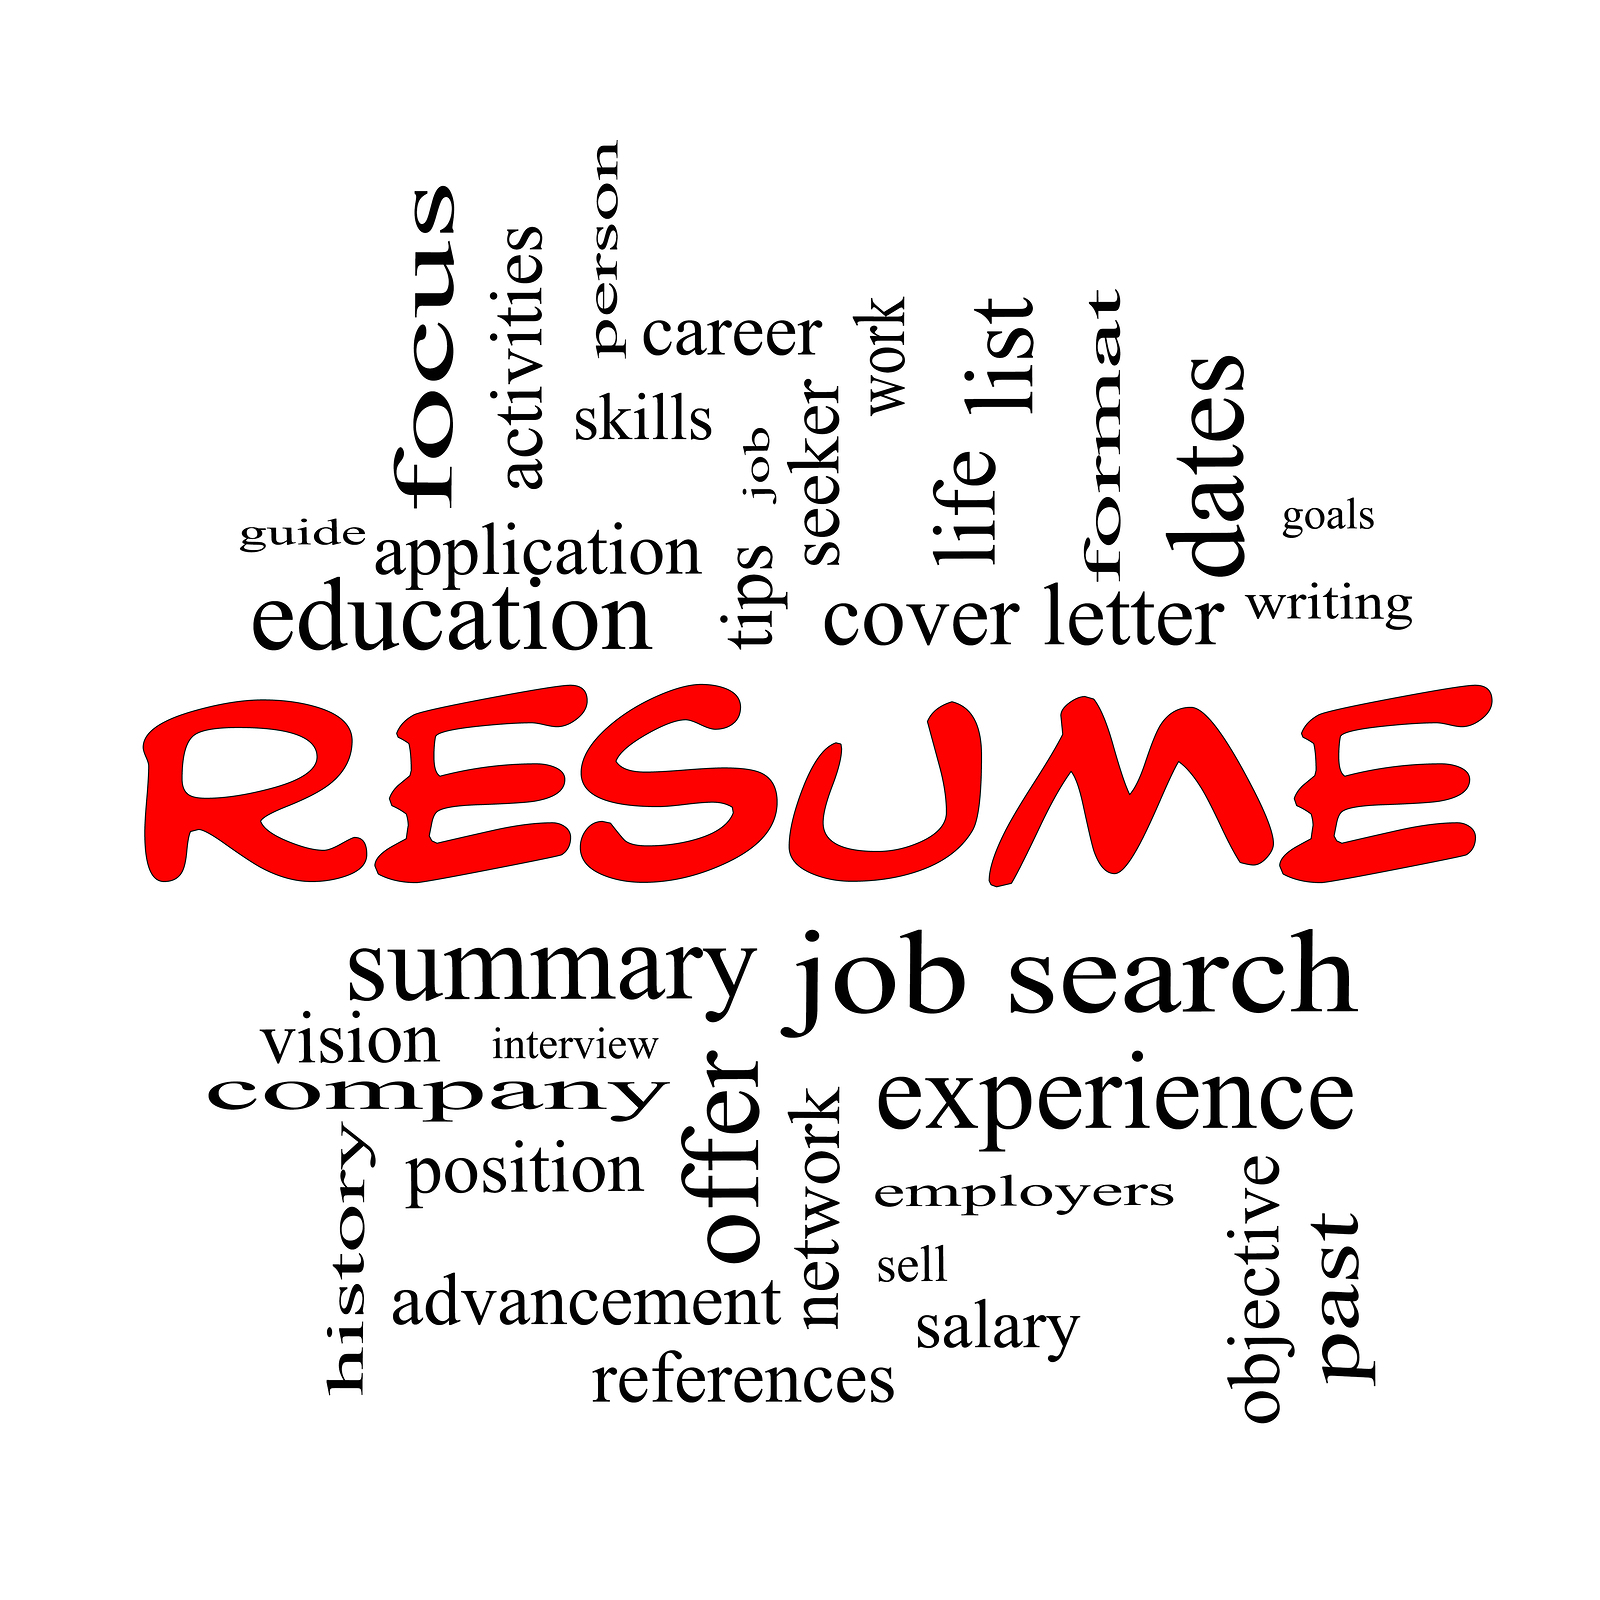 resume Resume Services proofreading copy editing and resume services writing